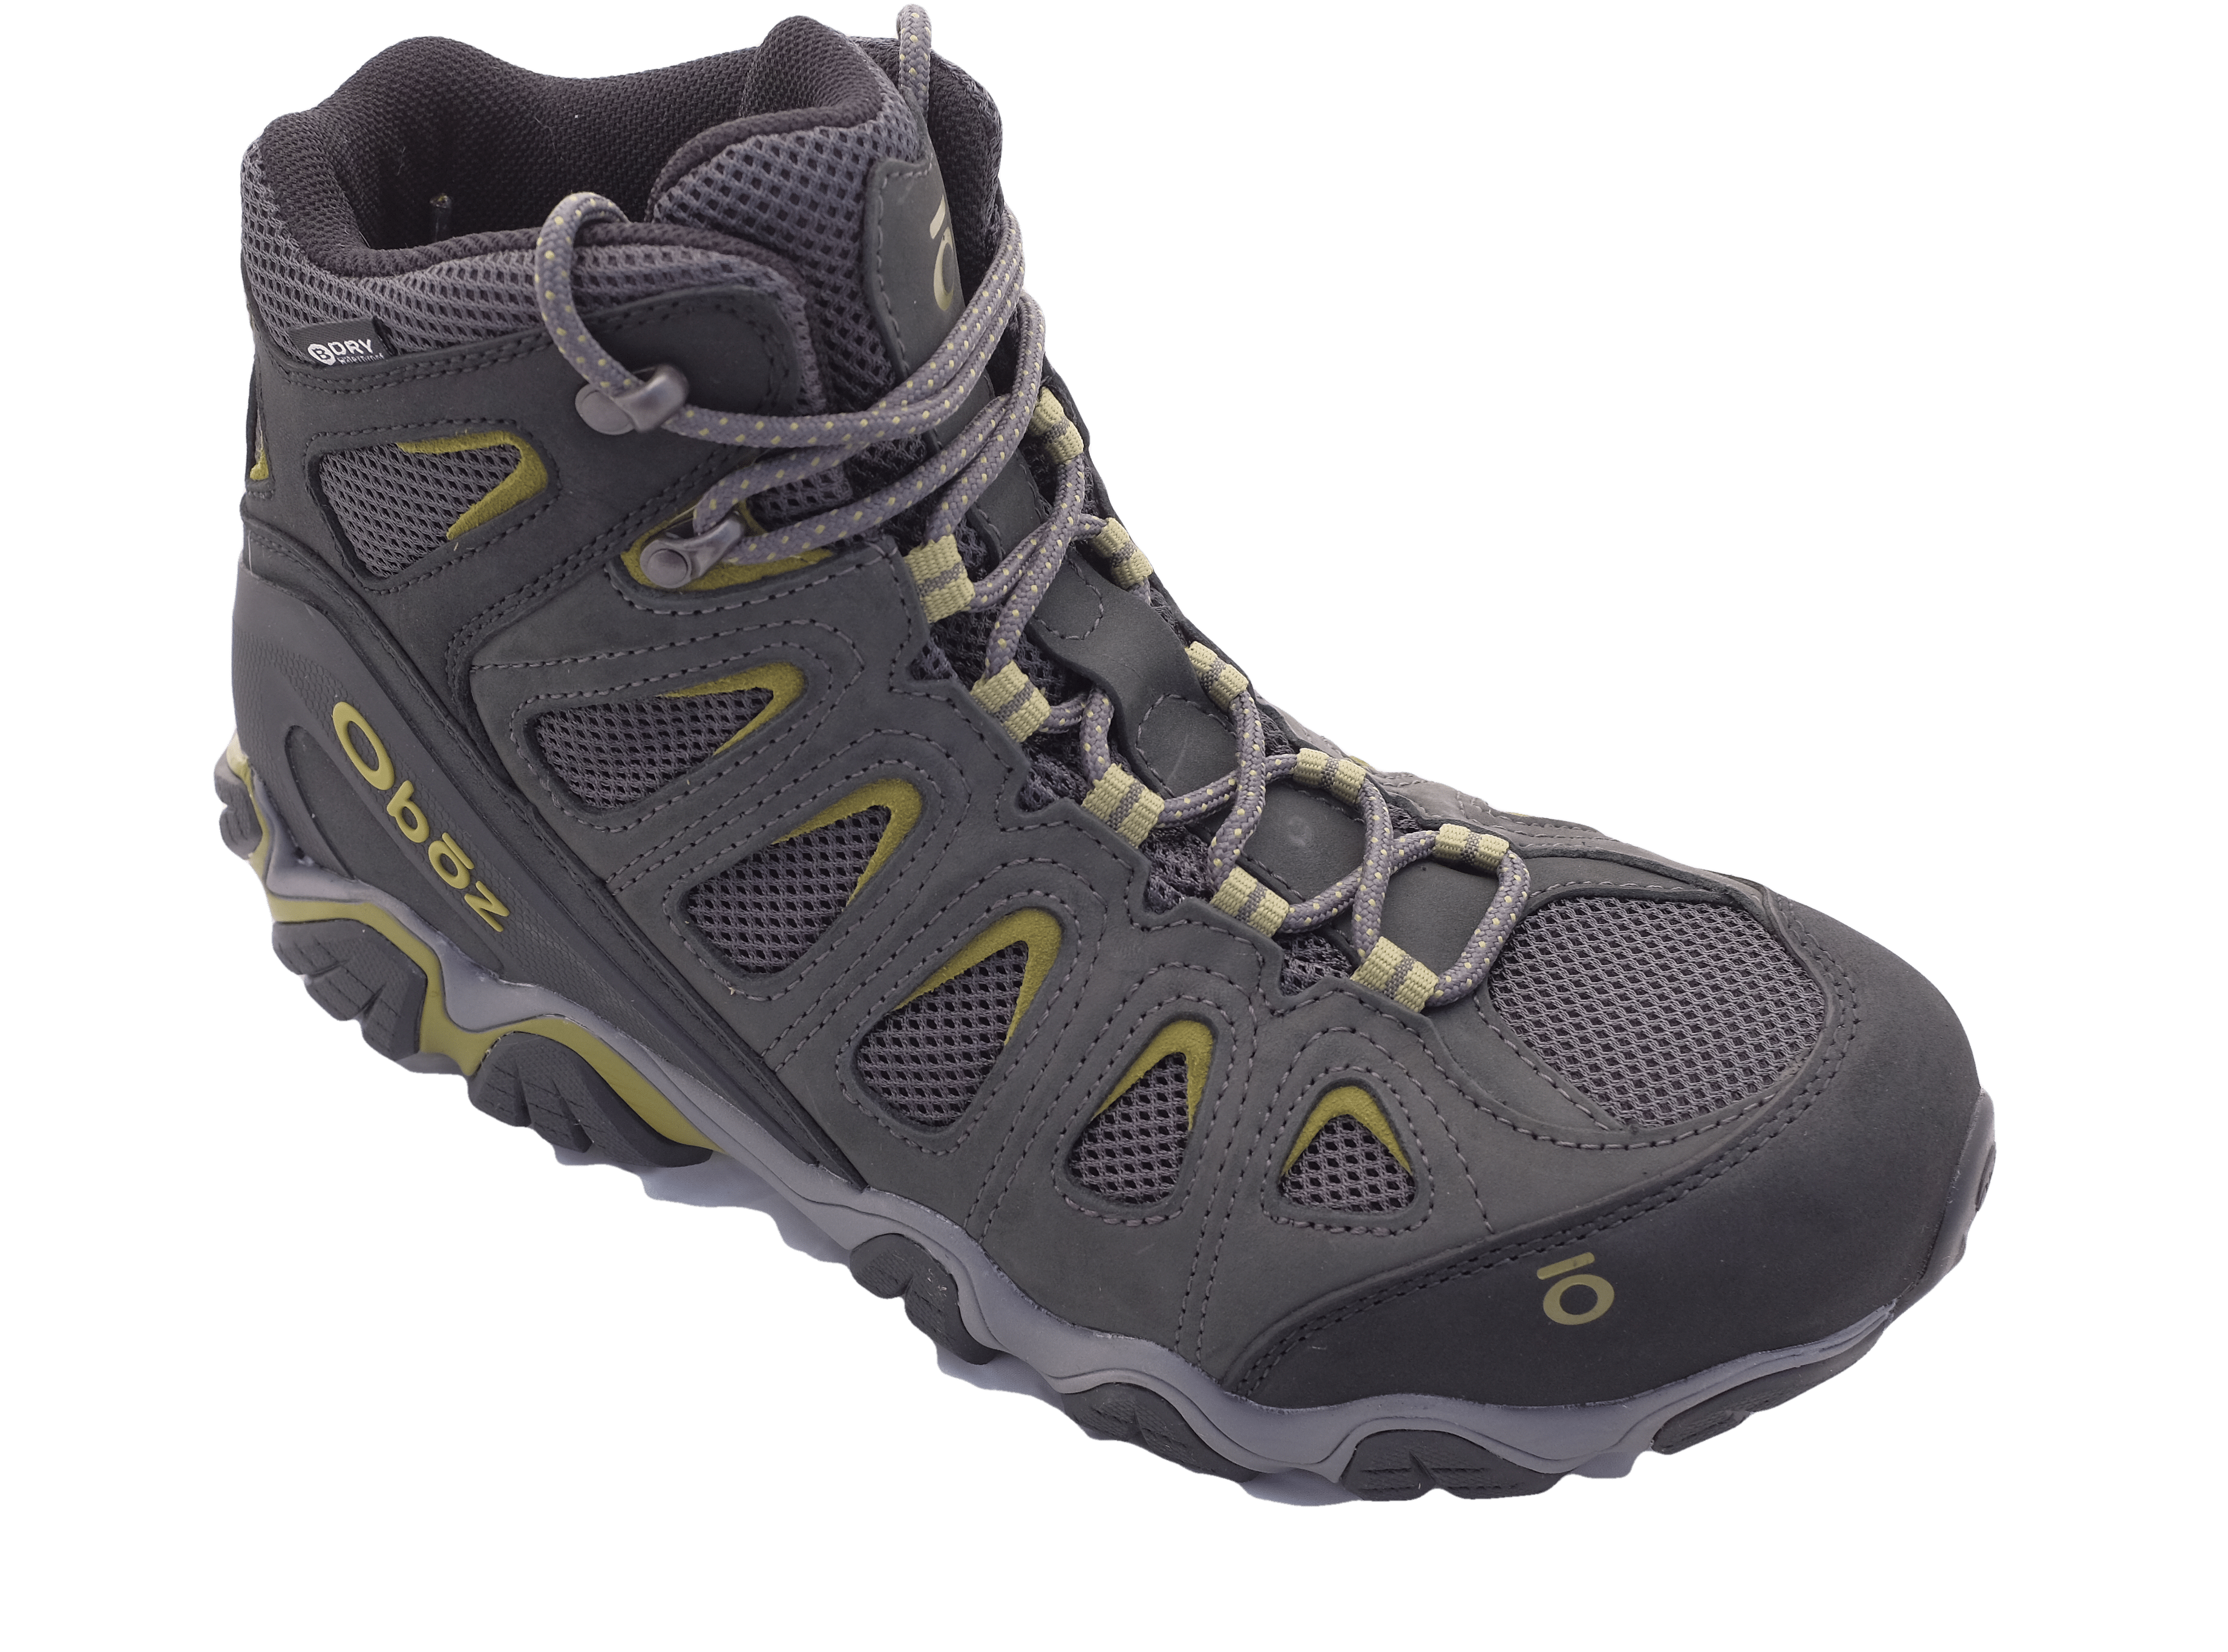 10 Christmas Gifts for Him: Gear Guide for the Male